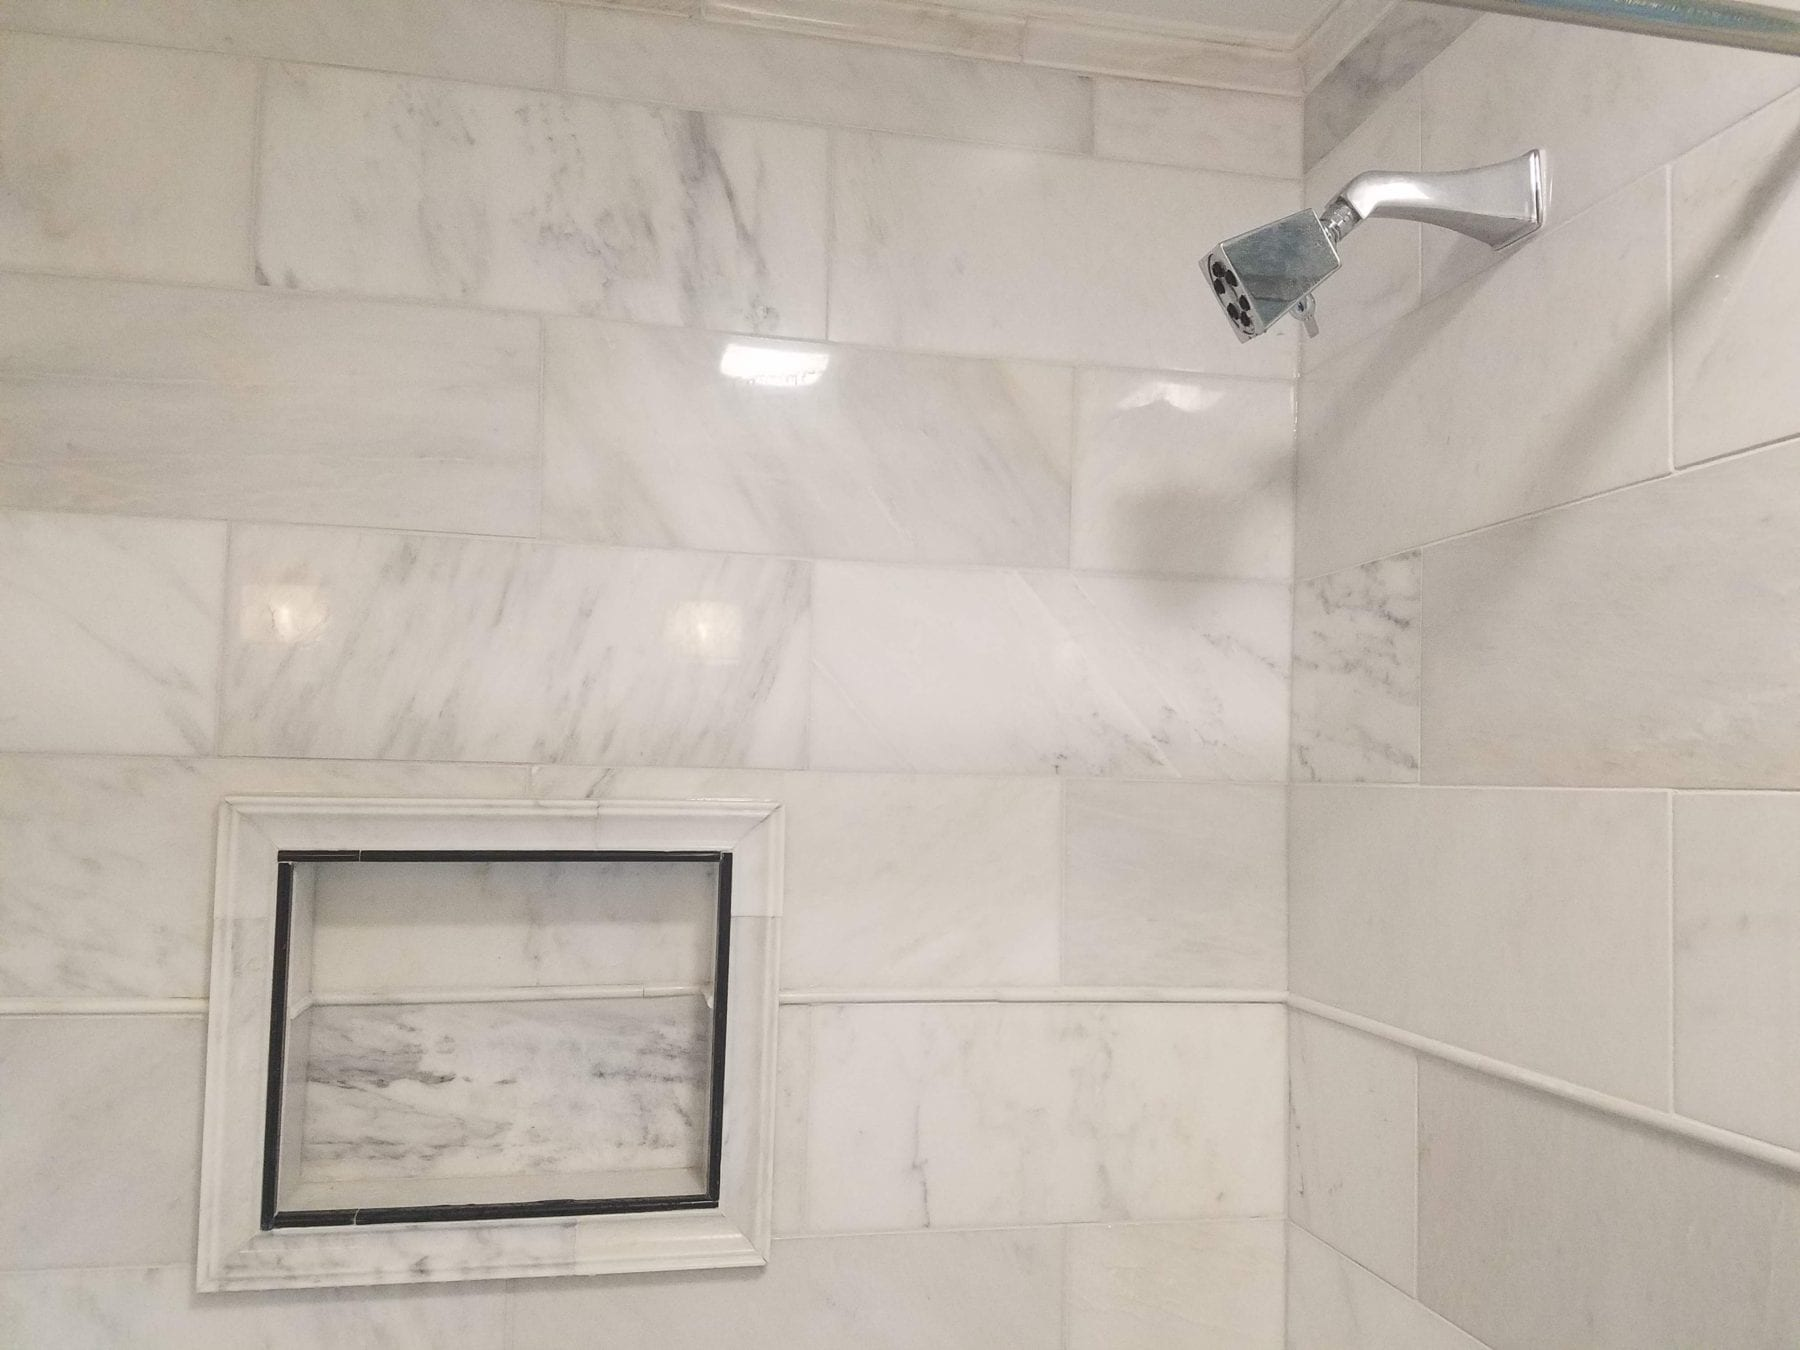 Bathroom Remodeling Baltimore Md bathroom remodeling in baltimore, md | trademark construction